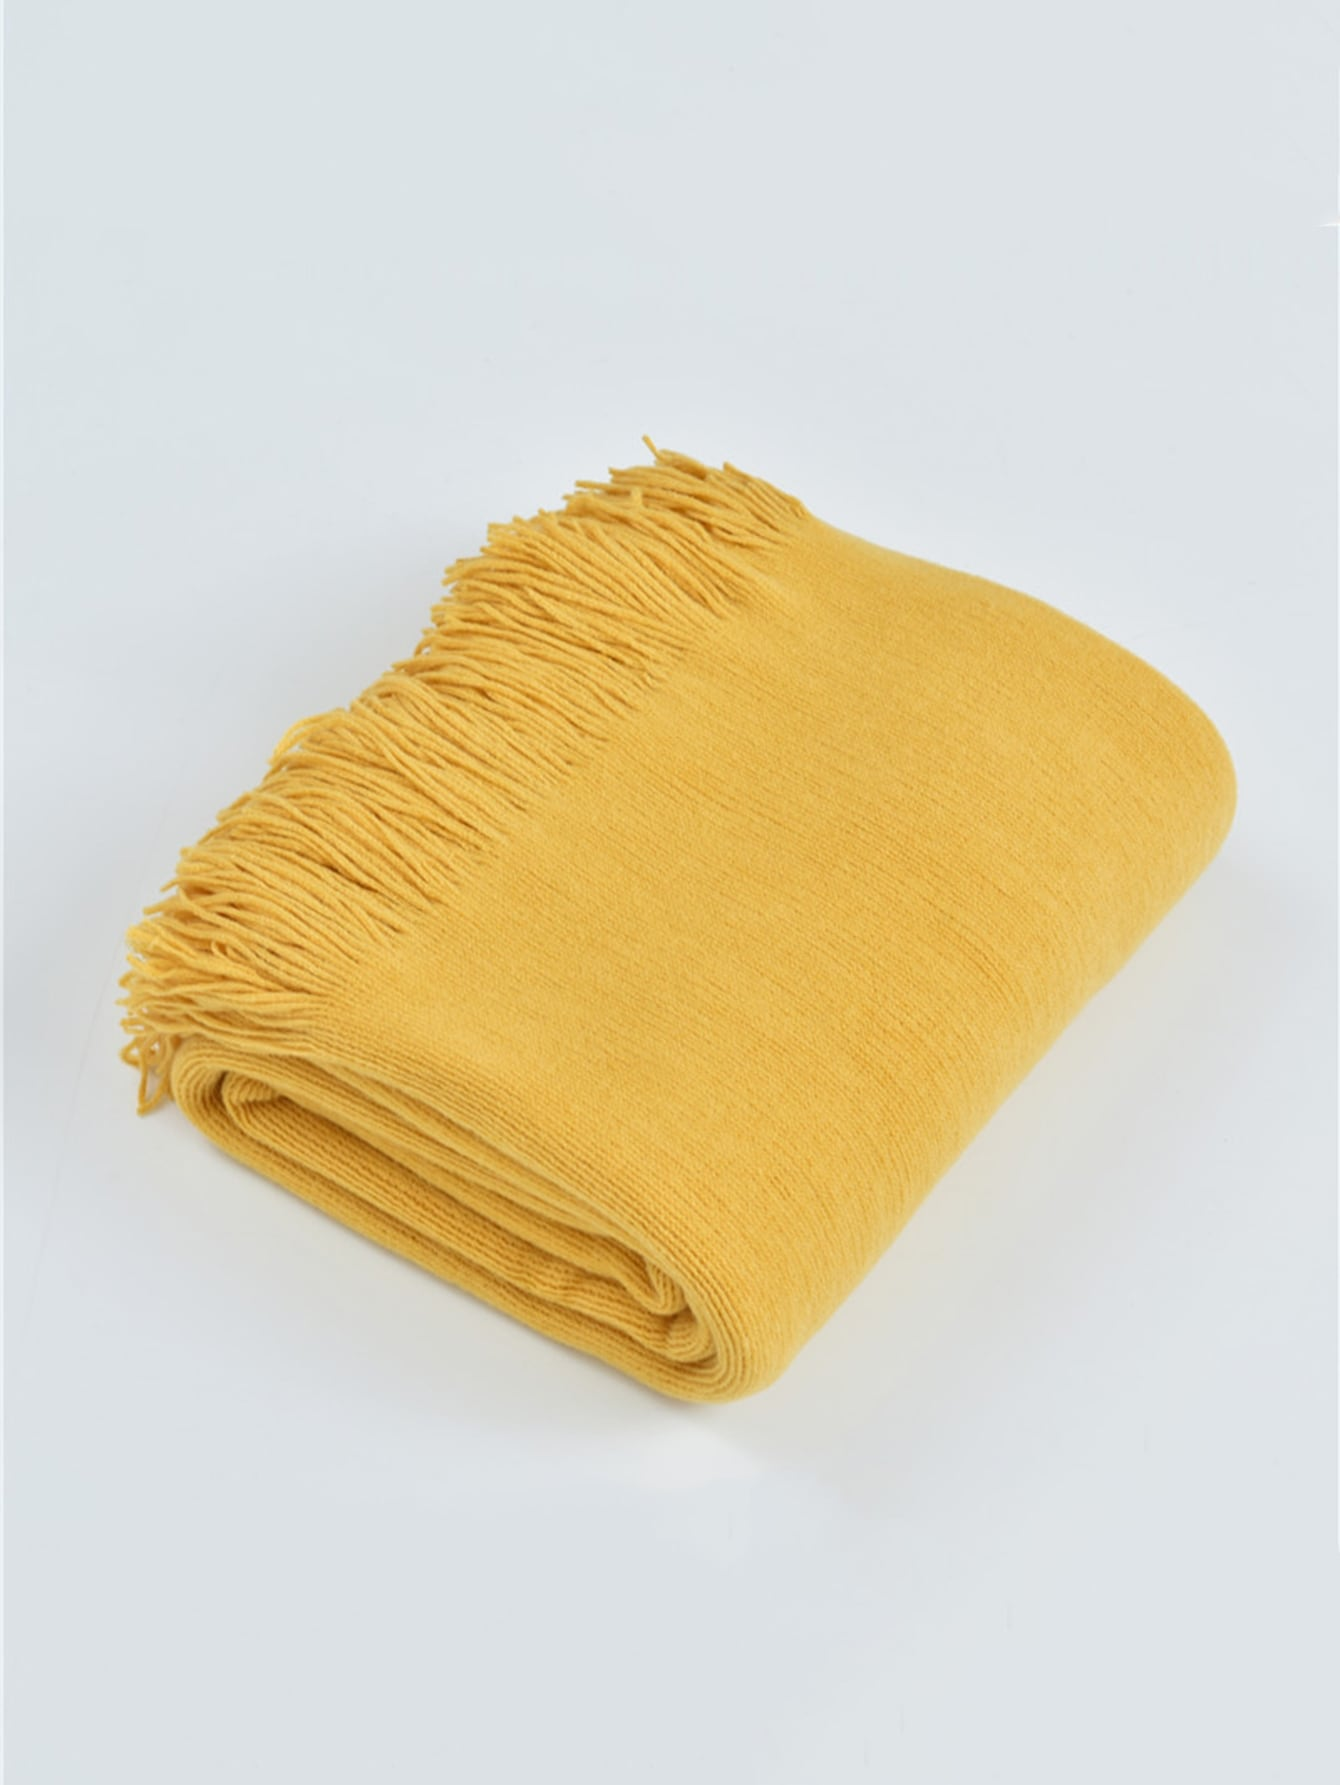 Plain Strip Knitted Blanket